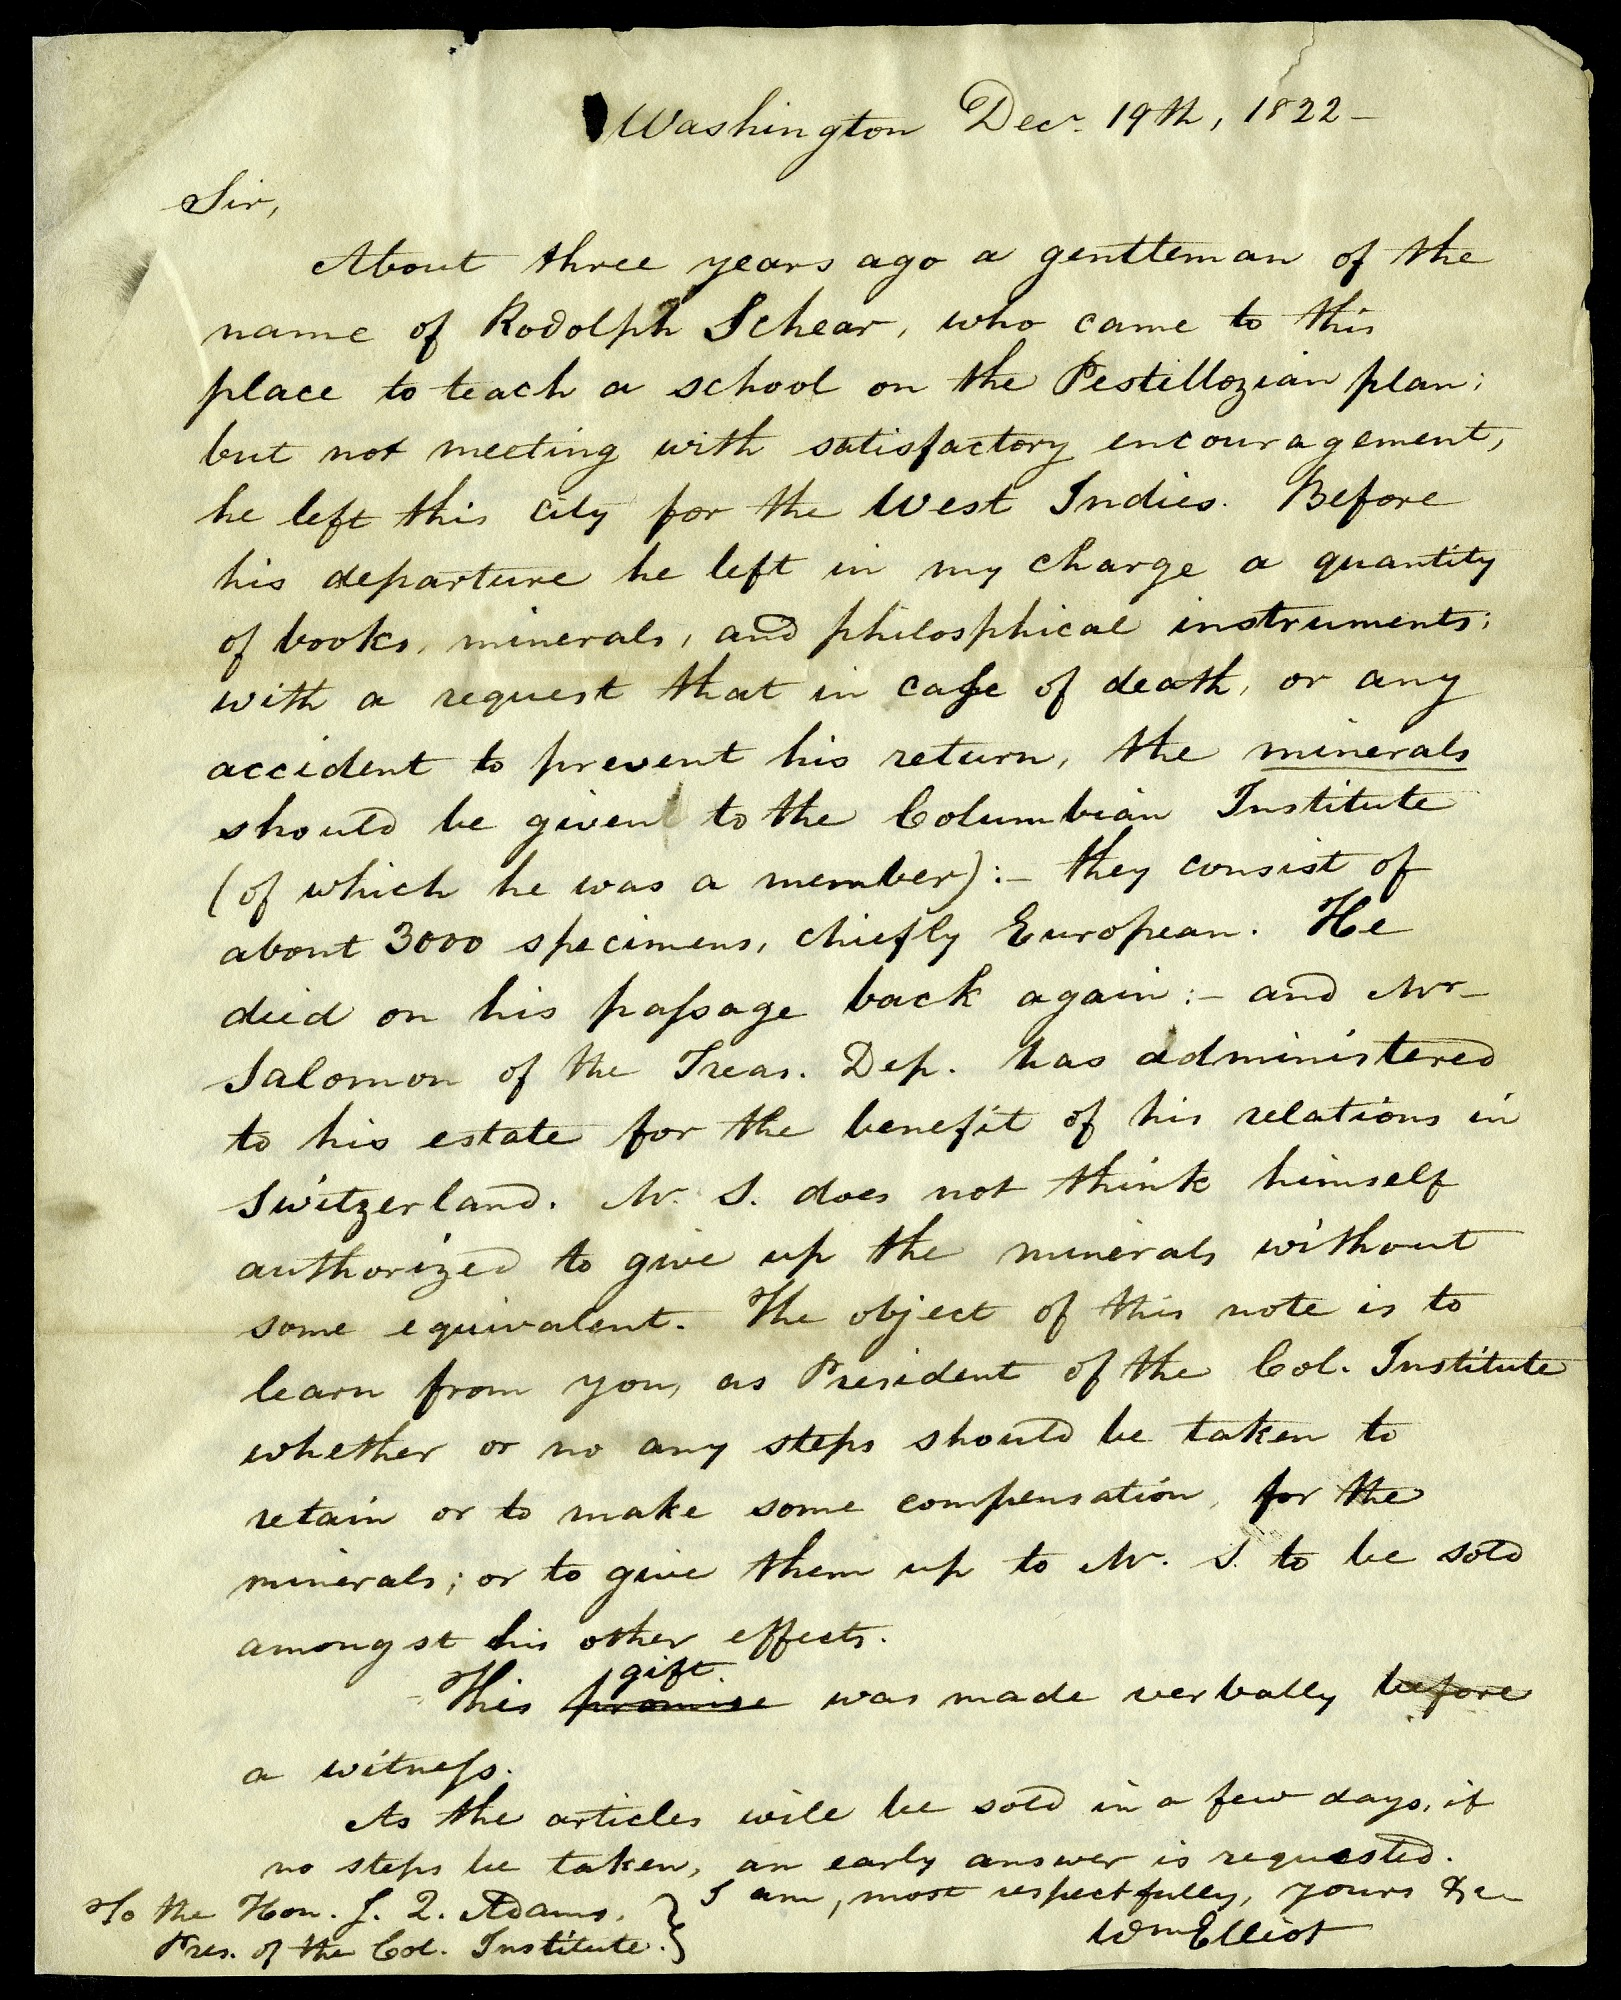 Letter from William Elliot to John Quincy Adams, President of the Columbian Institute, December 19, 1822